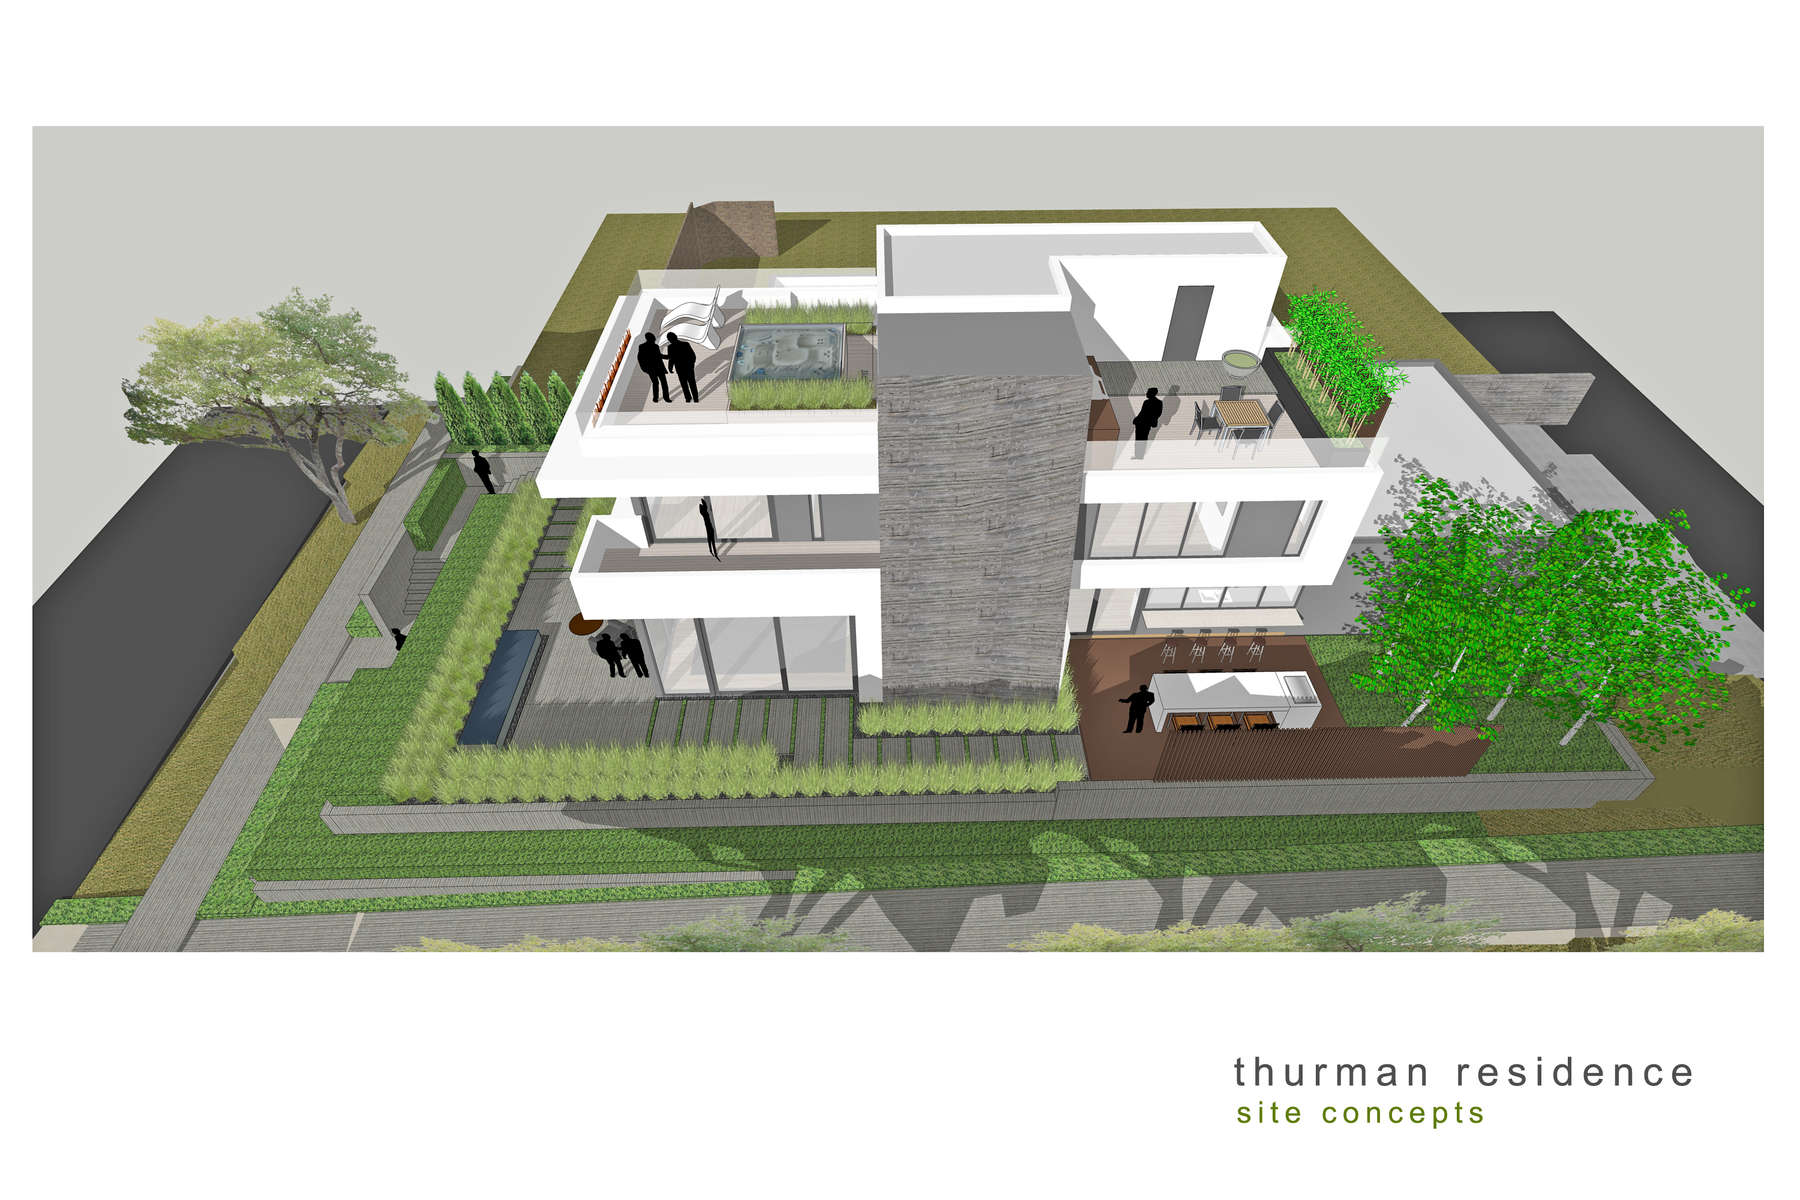 Thurman Residence